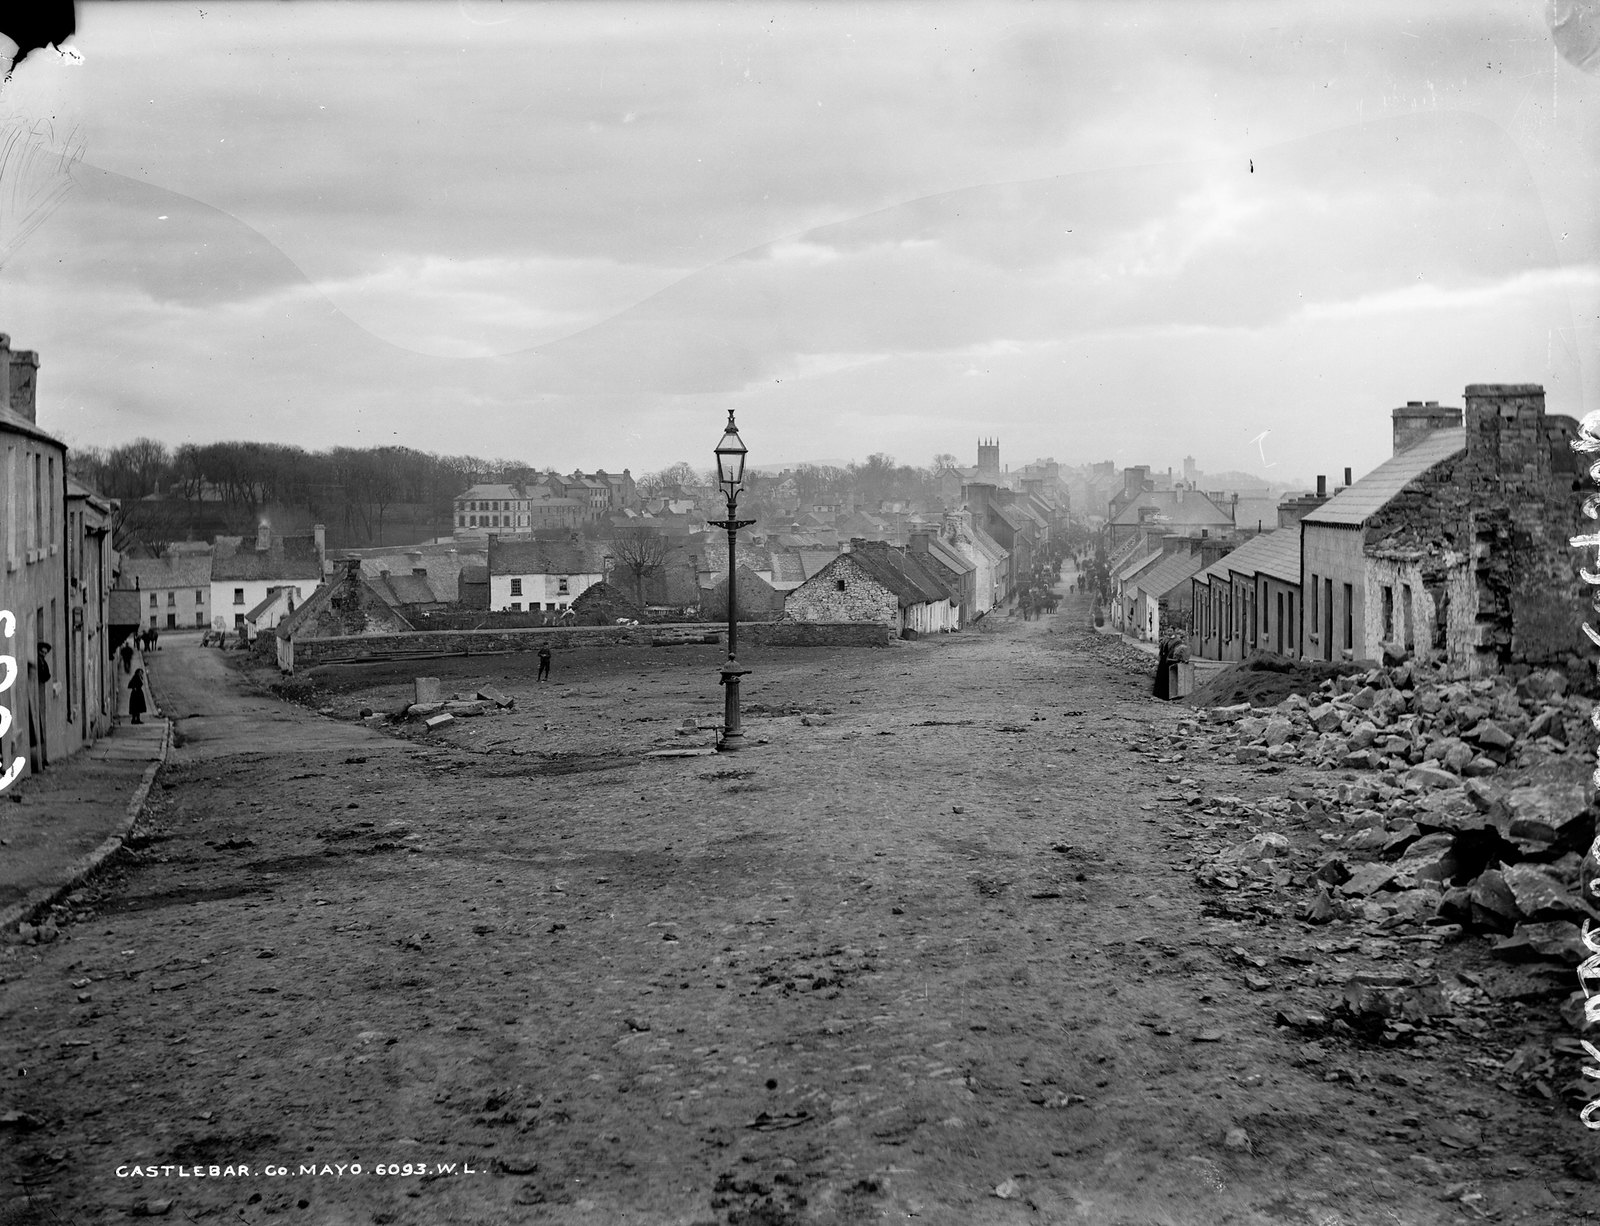 Rebuilding Castlebar, Co. Mayo | by National Library of Ireland on The Commons